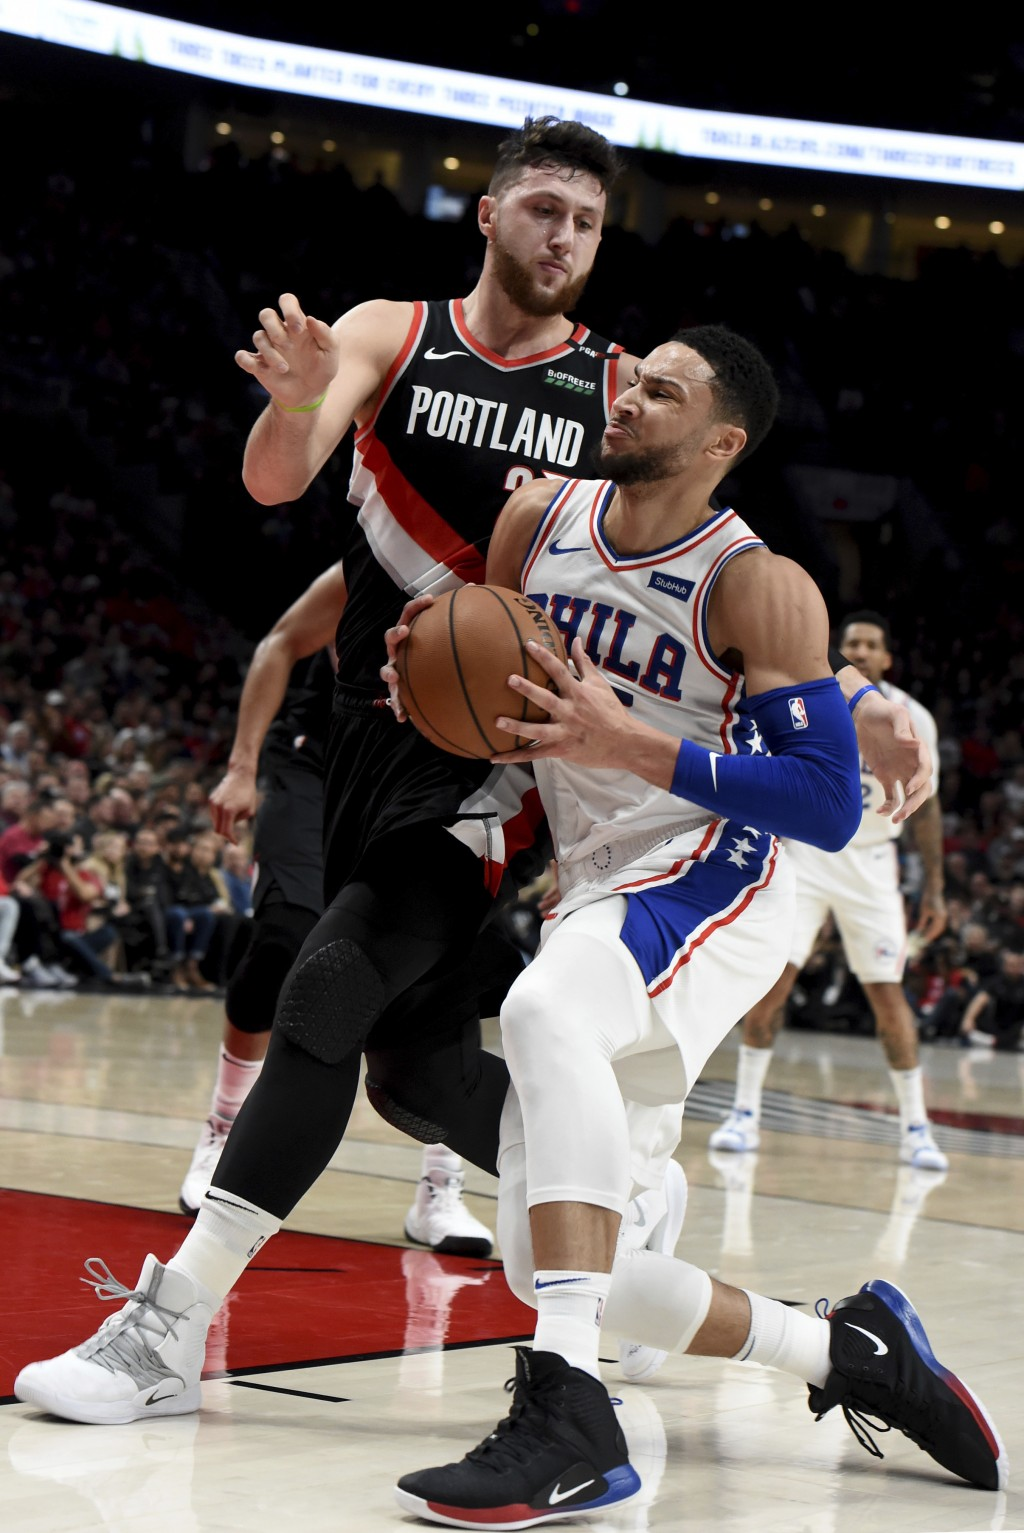 Philadelphia 76ers guard Ben Simmons, right, drives to the basket on Portland Trail Blazers center Jusuf Nurkic, left, during the first half of an NBA...